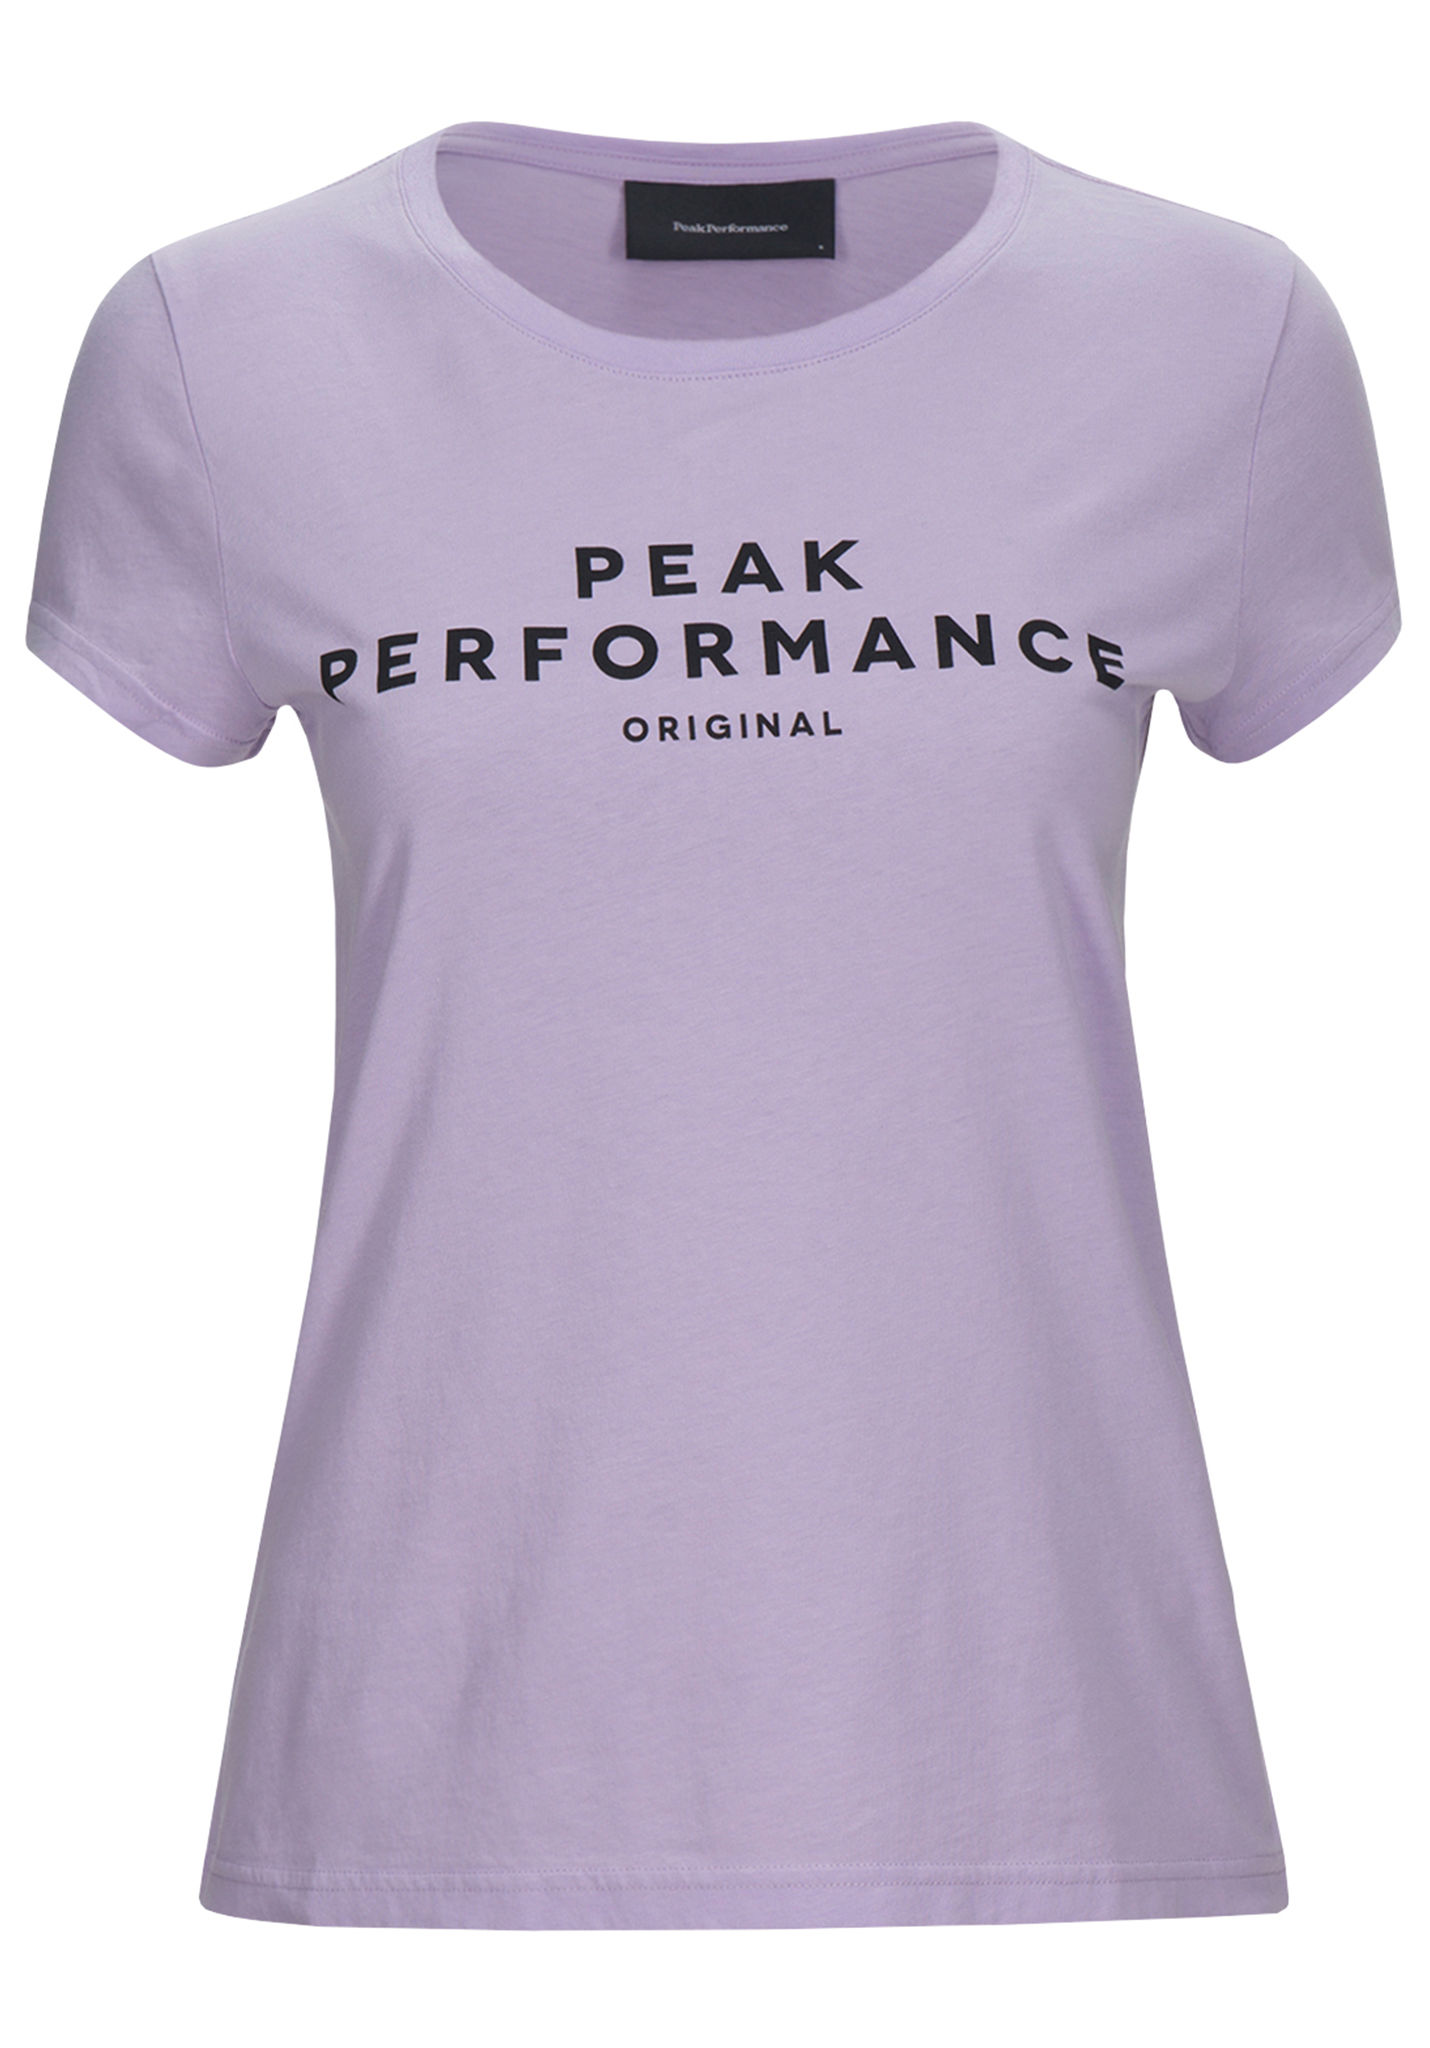 5db8a61a PEAK PERFORMANCE Logo - T-Shirt for Women - Purple - Planet Sports